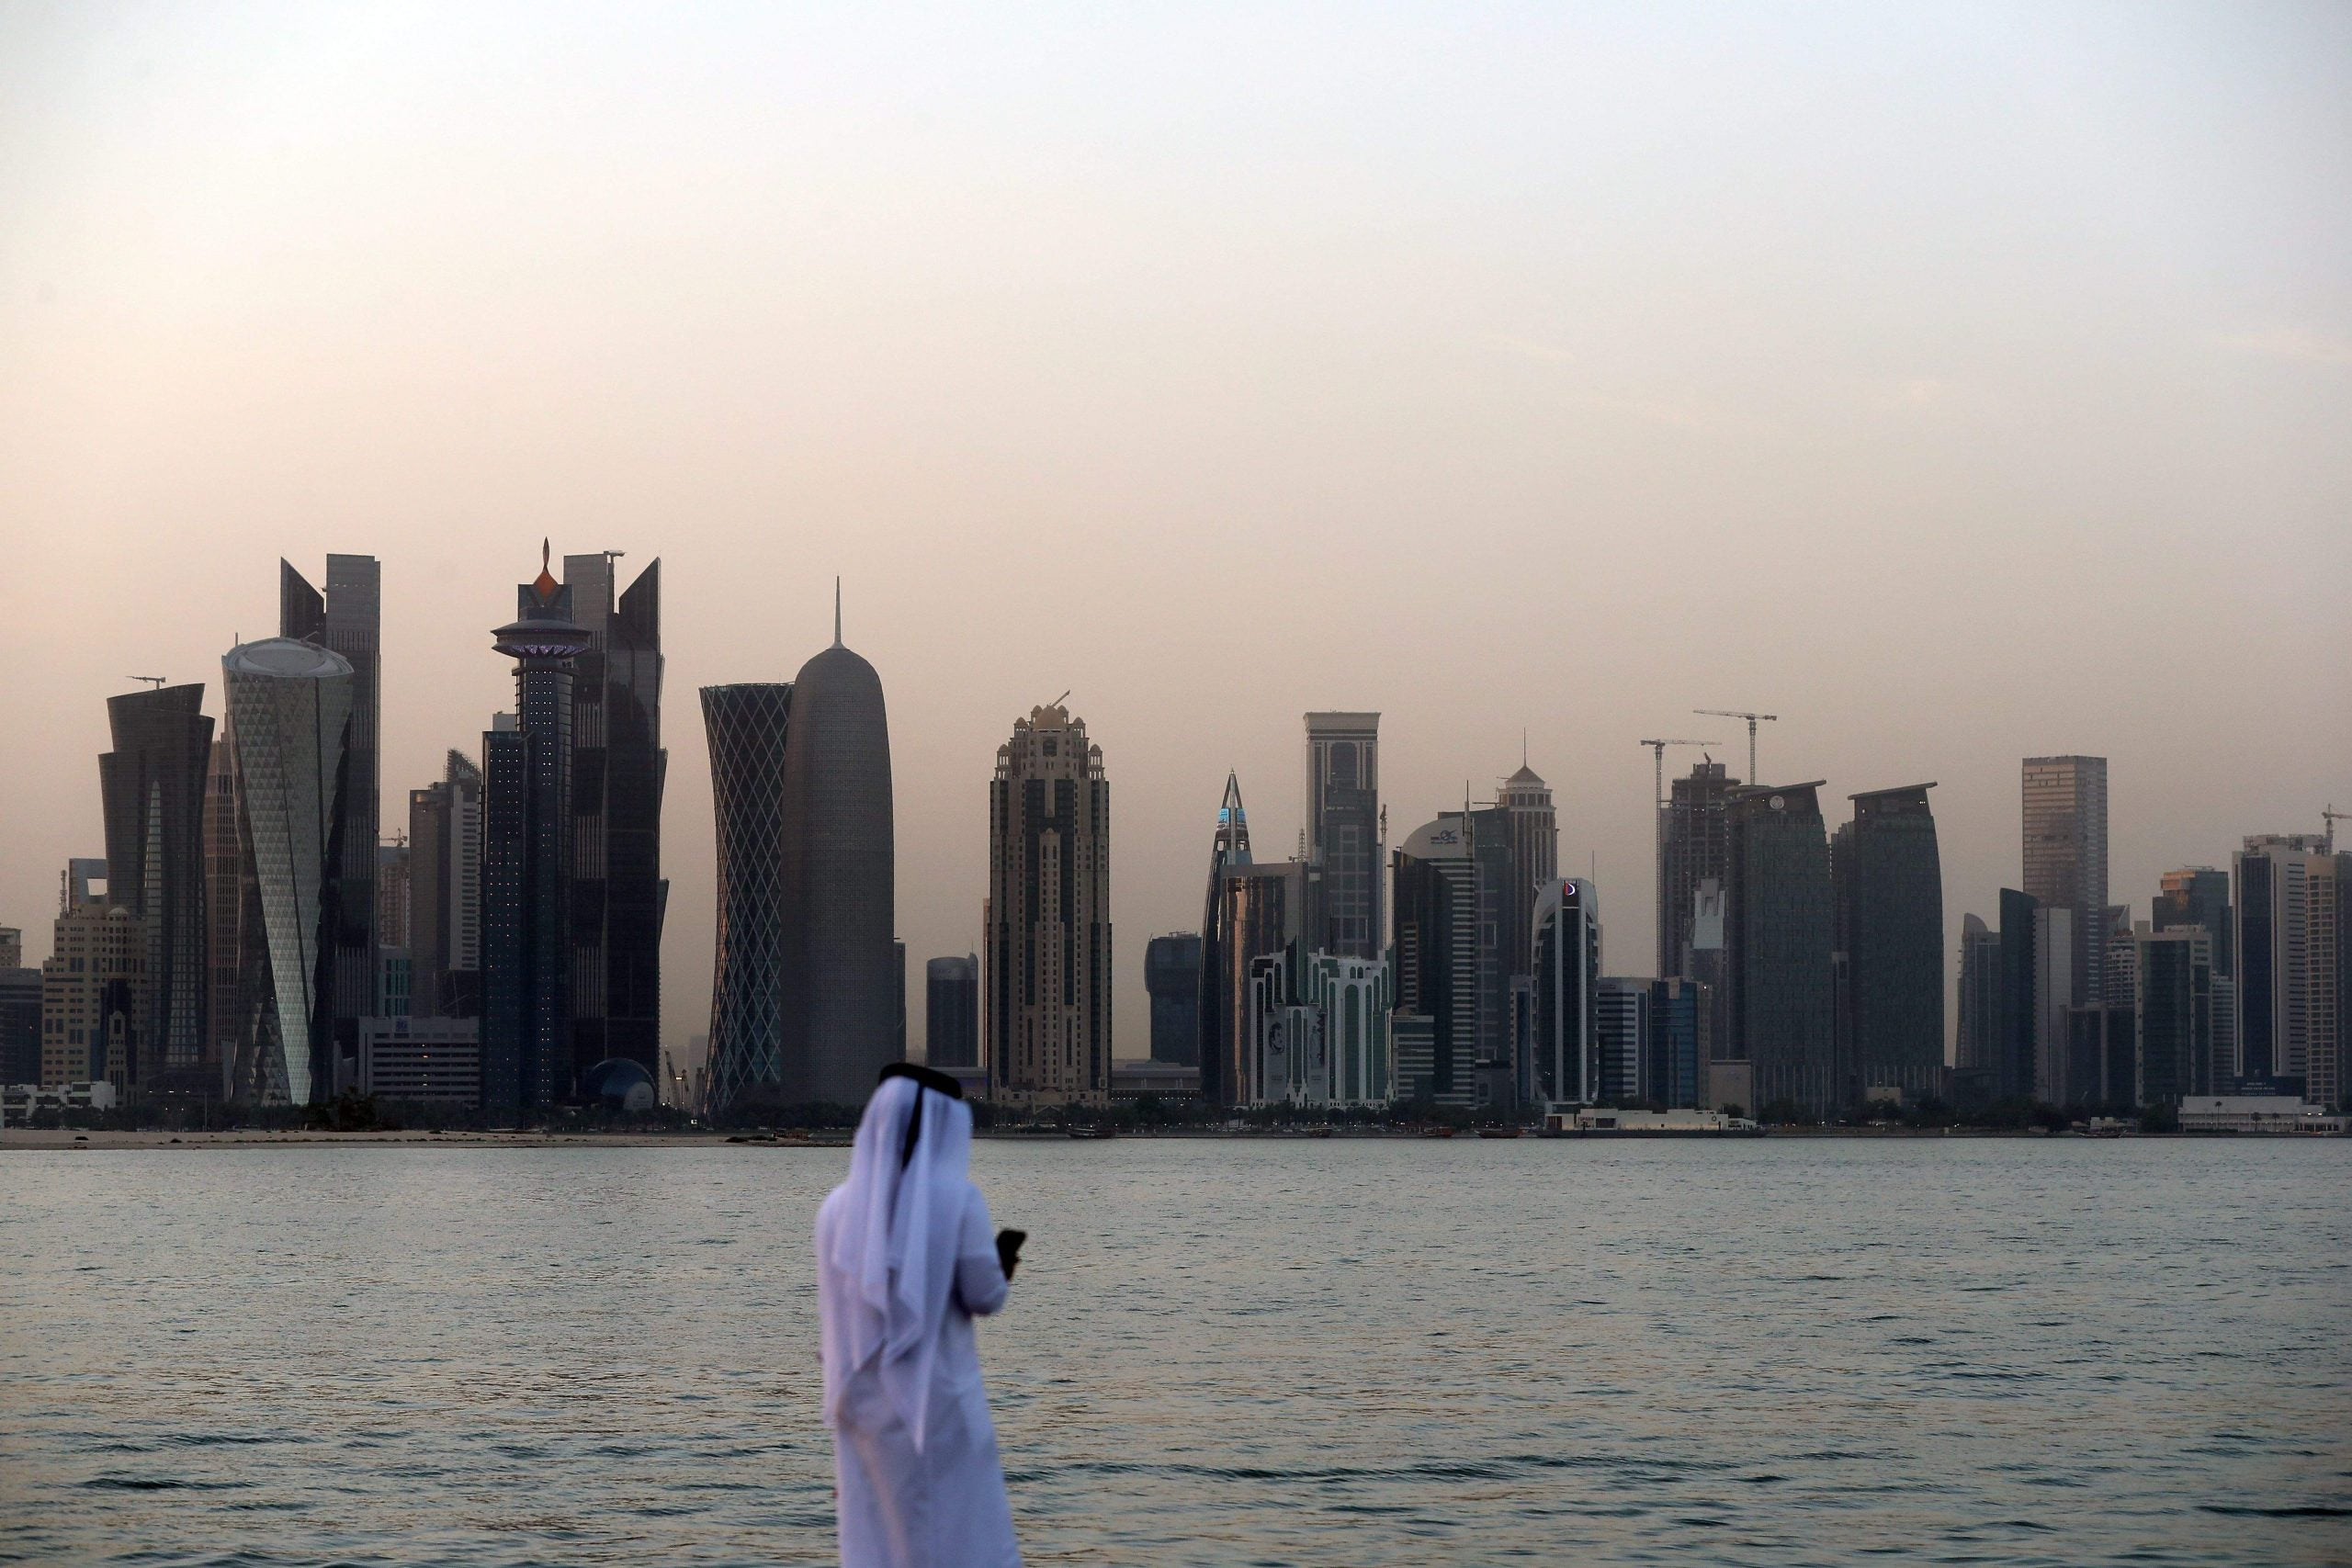 How to end the Gulf stand off? The West should tell Qatar to reform its foreign policy